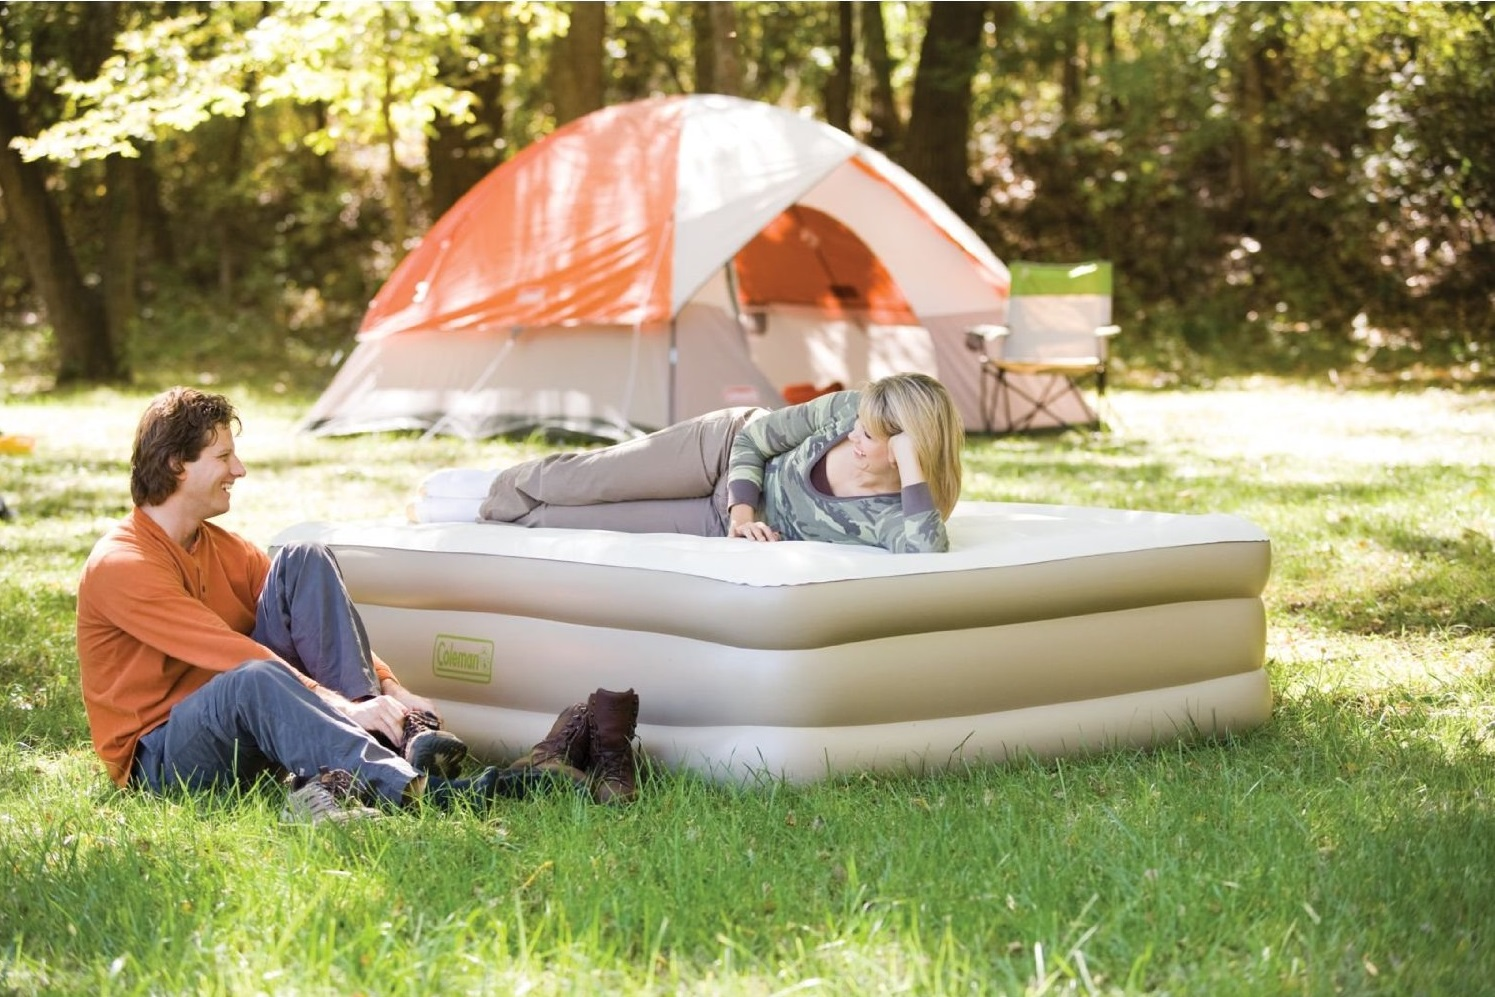 Best Air Mattress For Camping: Top 10 Picks and Reviews